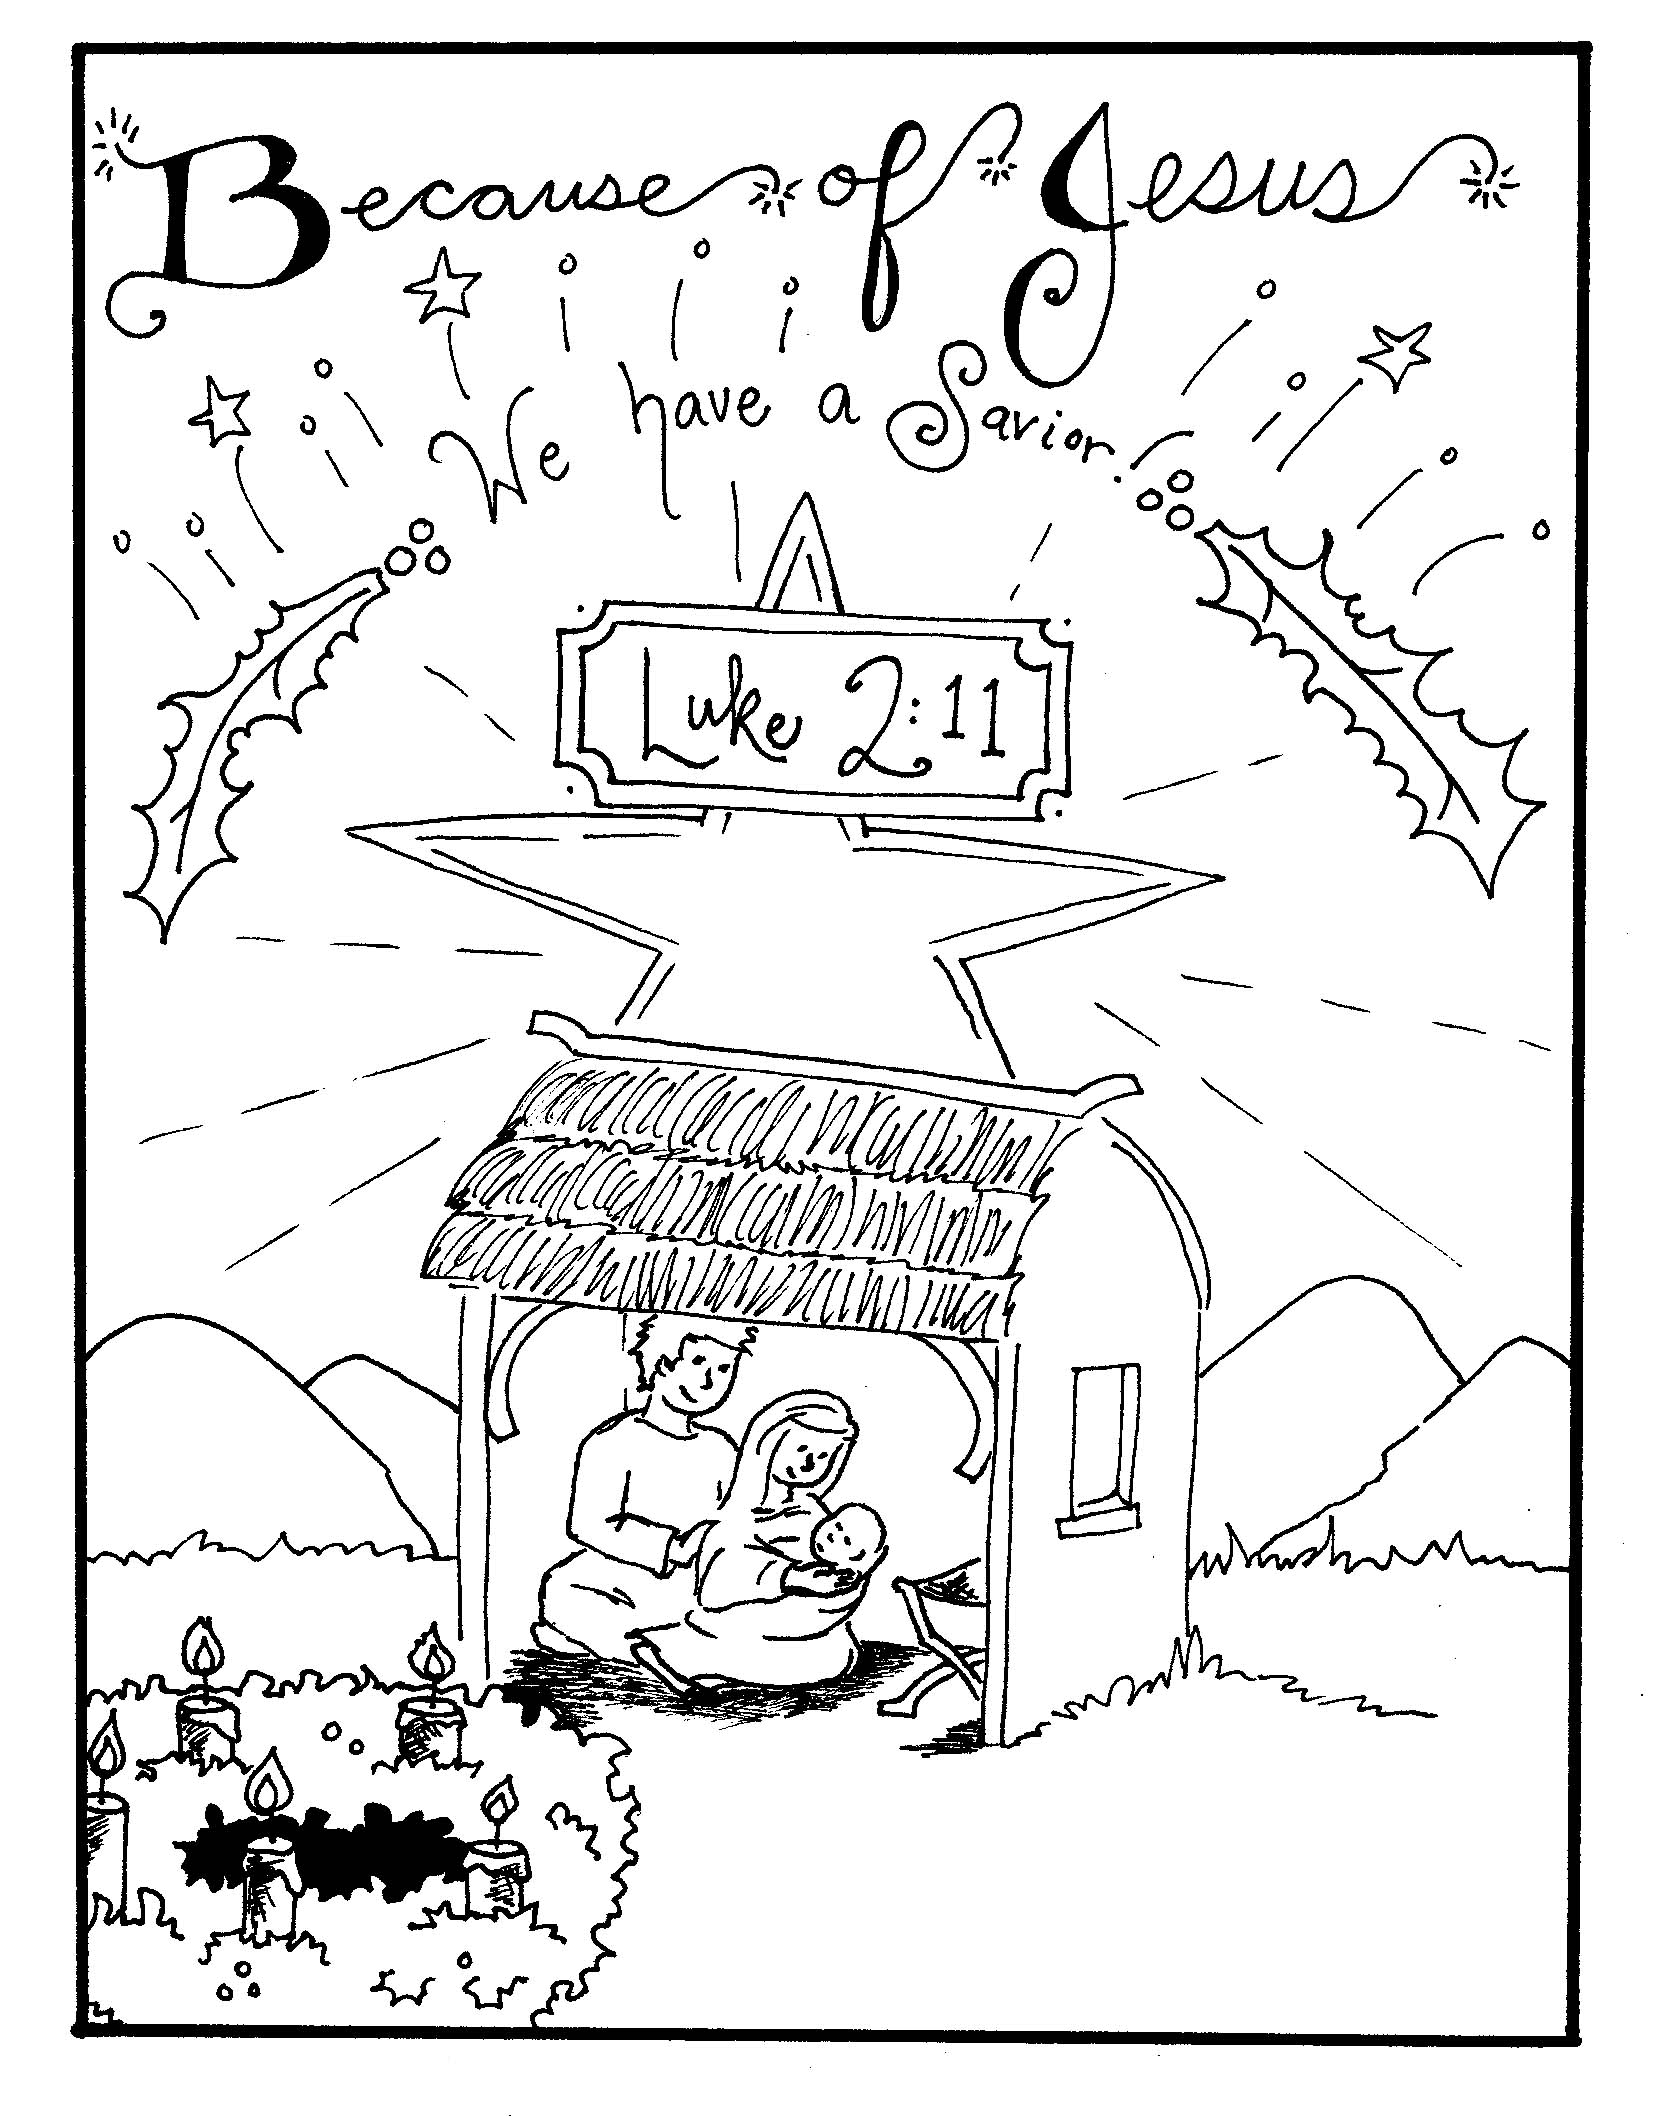 photograph relating to Free Printable Christmas Nativity Colouring Pages known as Free of charge Printable Nativity Coloring Web pages for Young children - Great